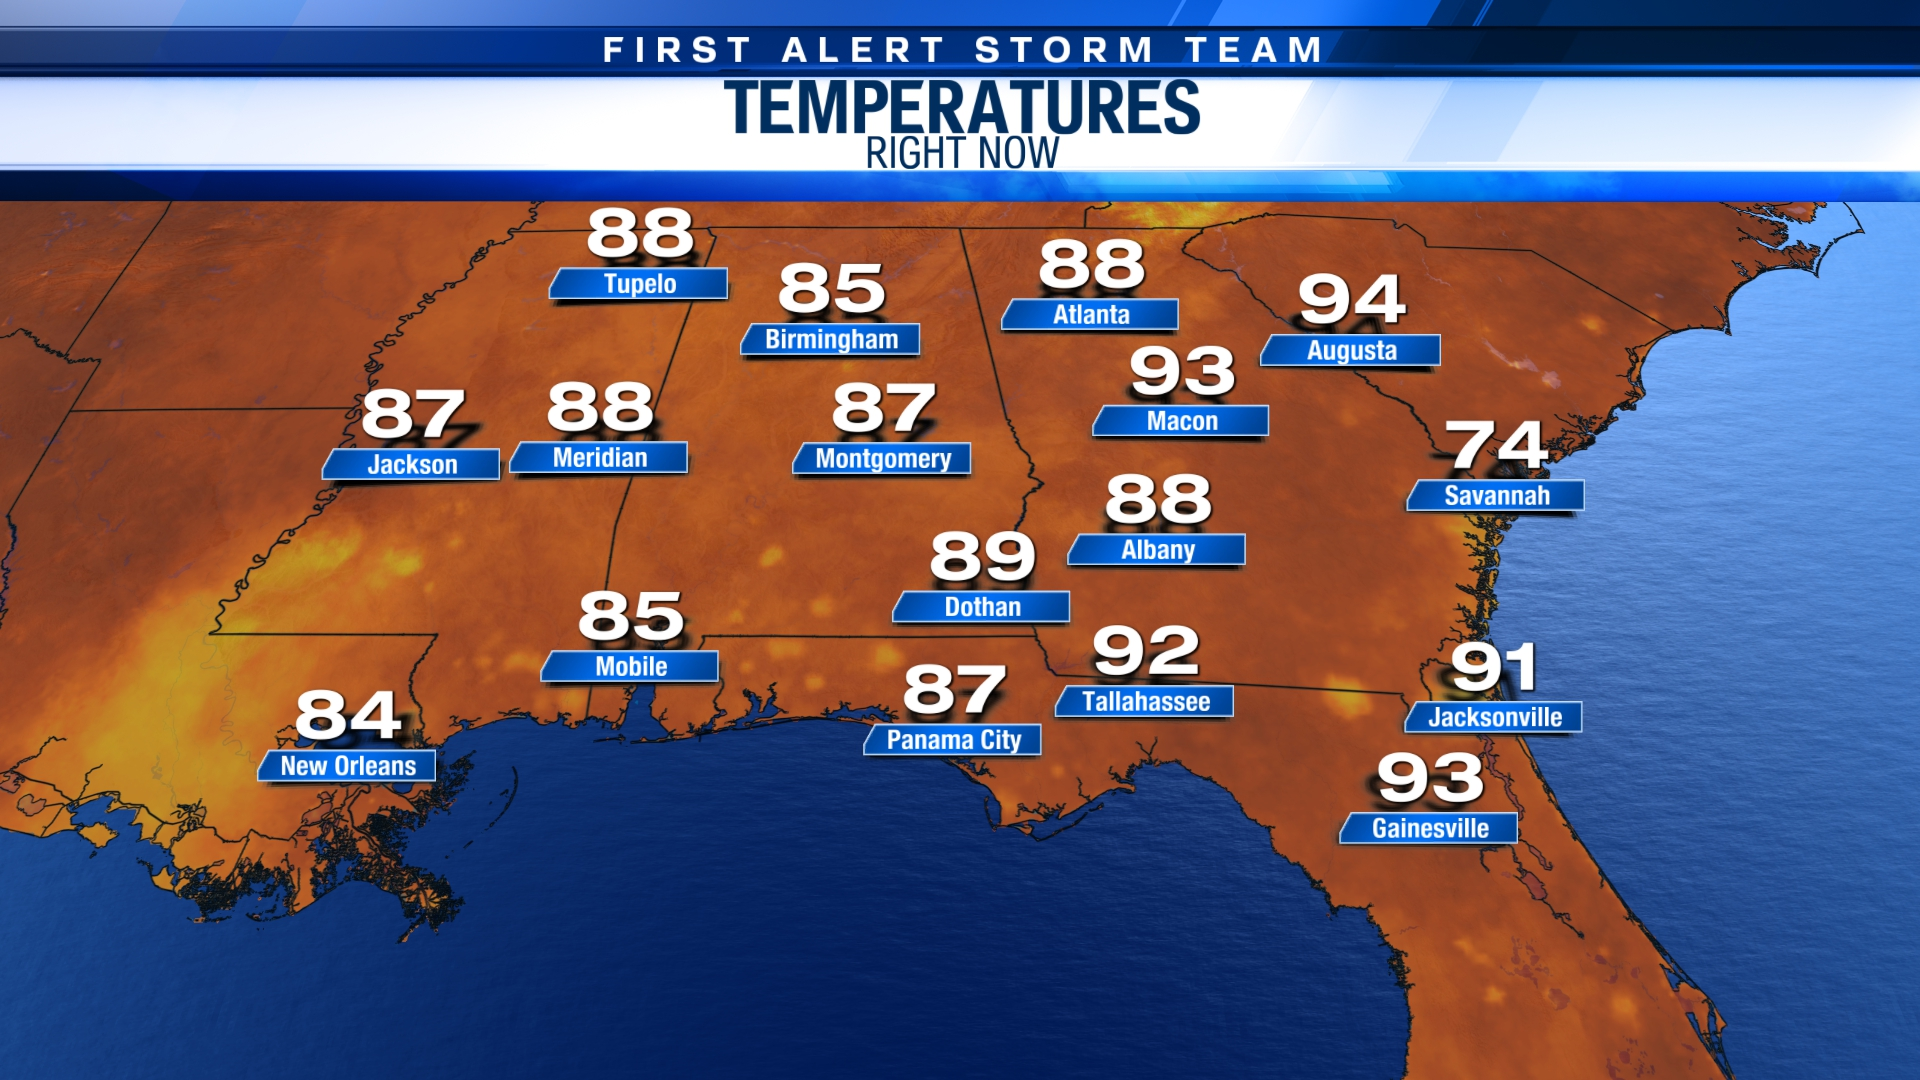 Five State Temps